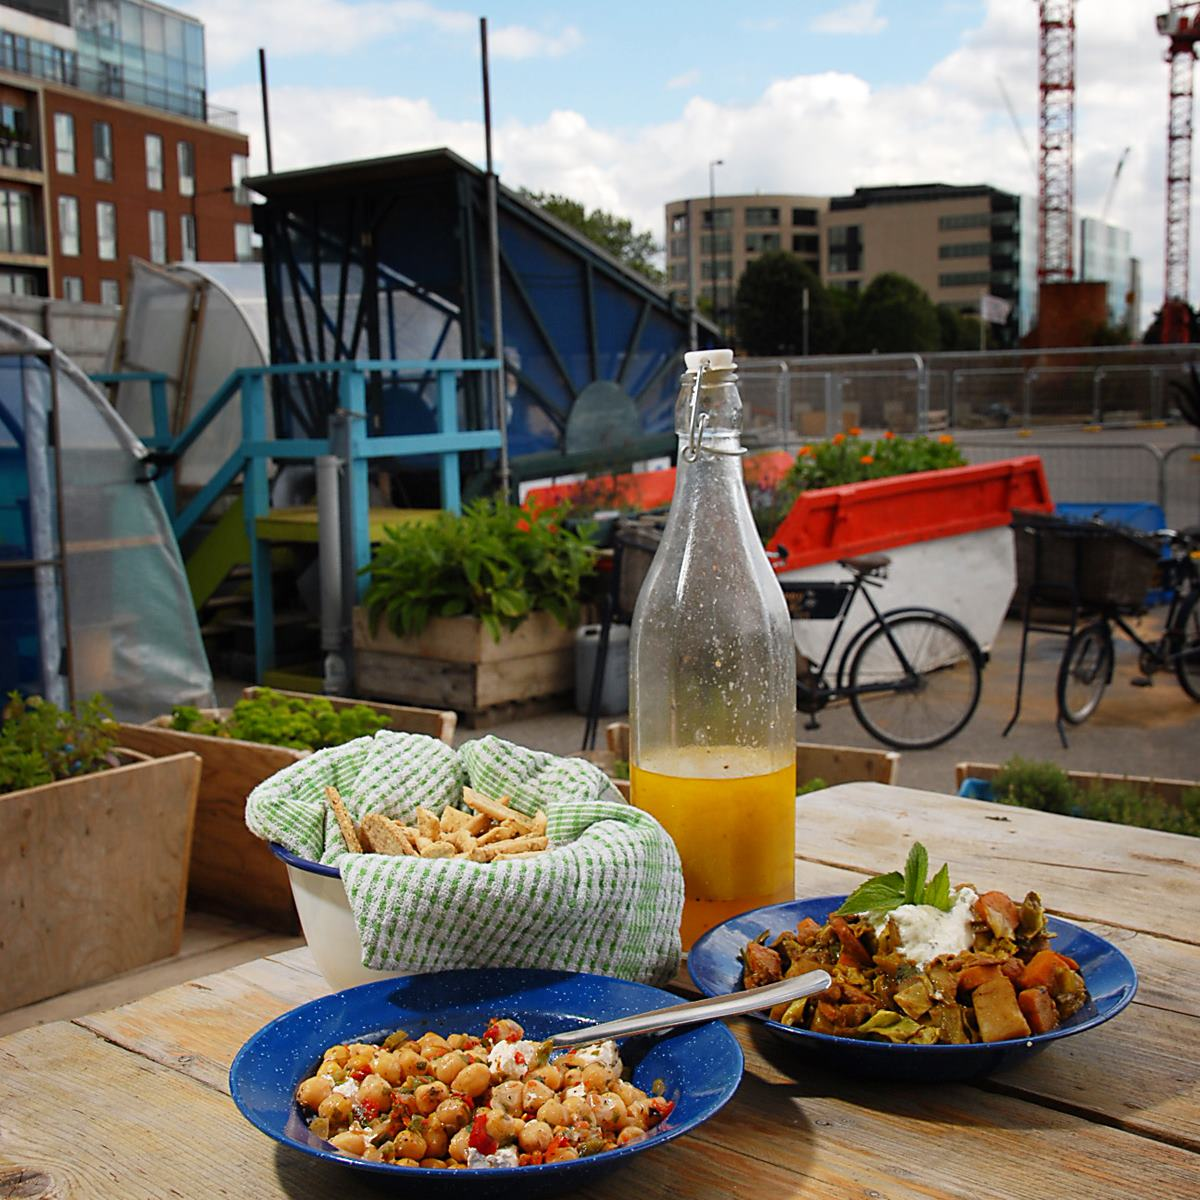 delicious food at The Skip Garden at King's Cross